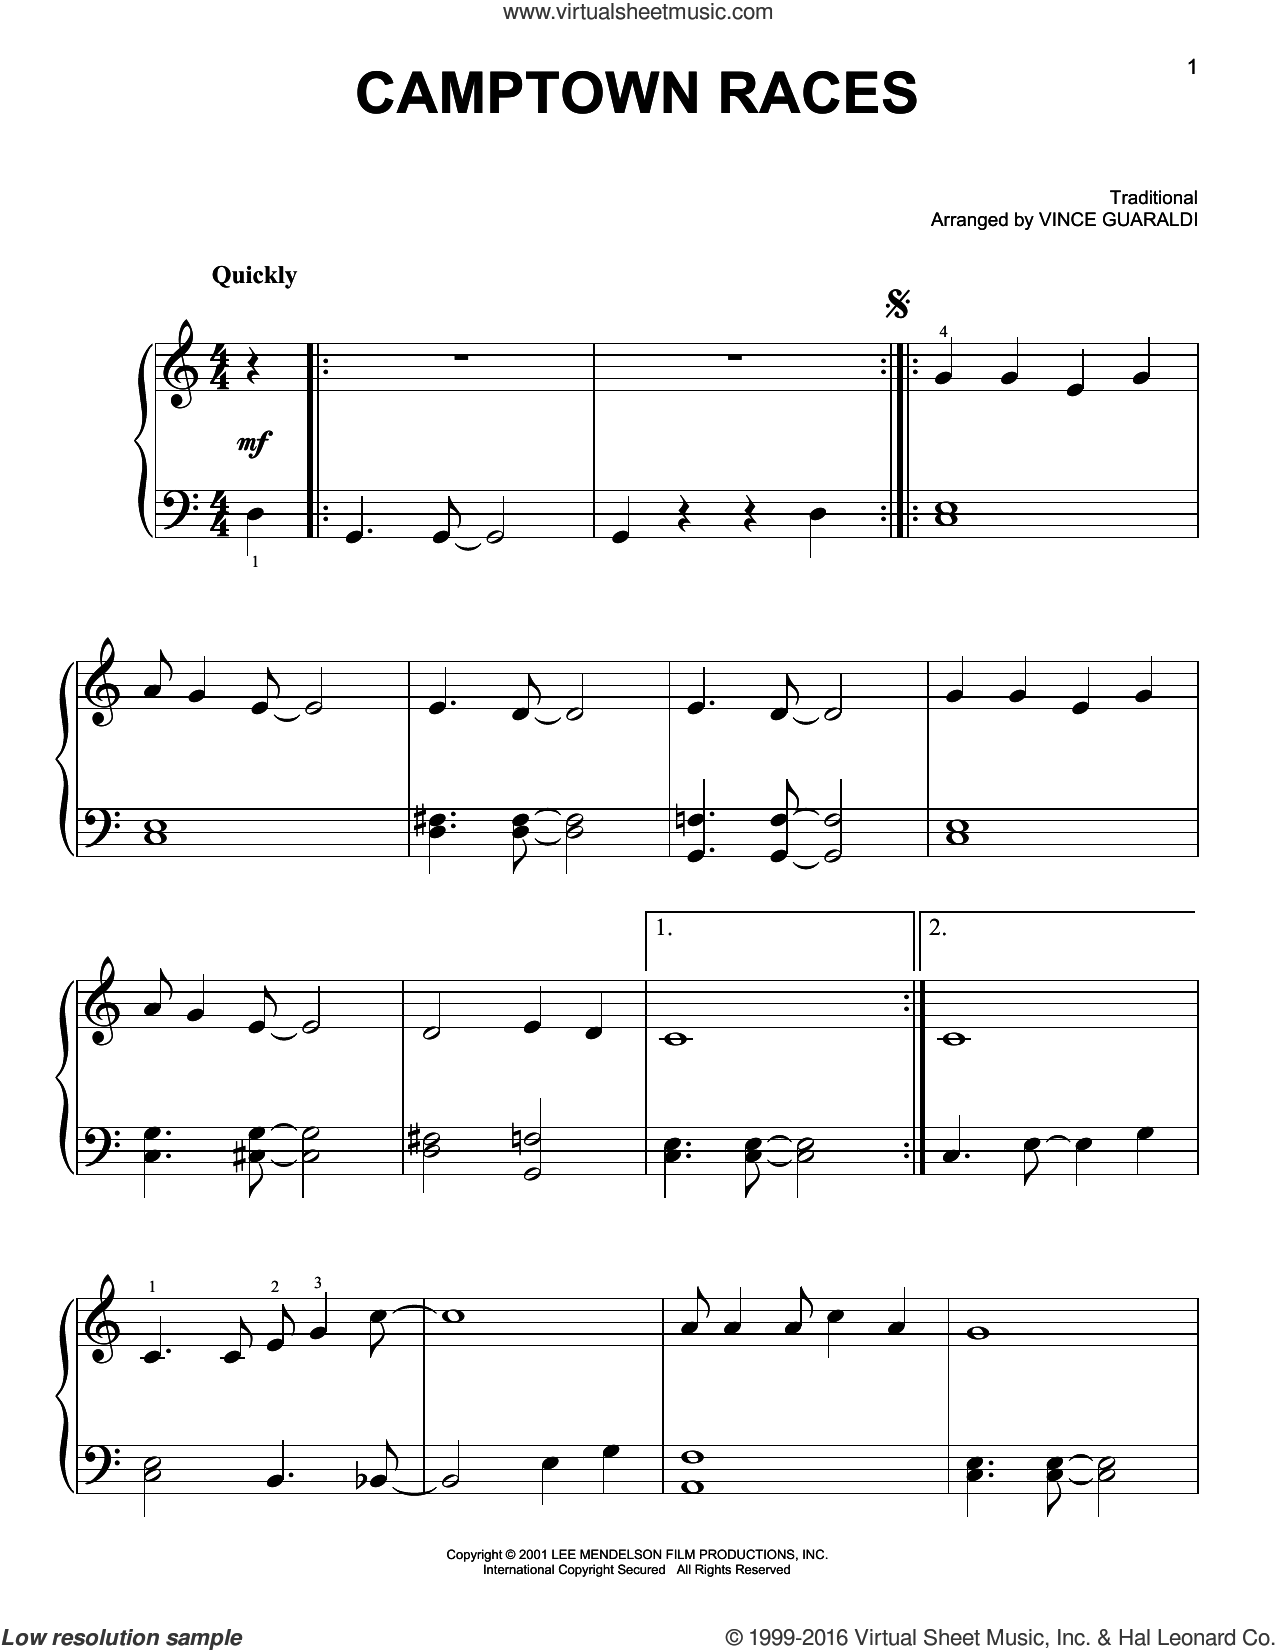 Camptown Races sheet music for piano solo by Vince Guaraldi, easy